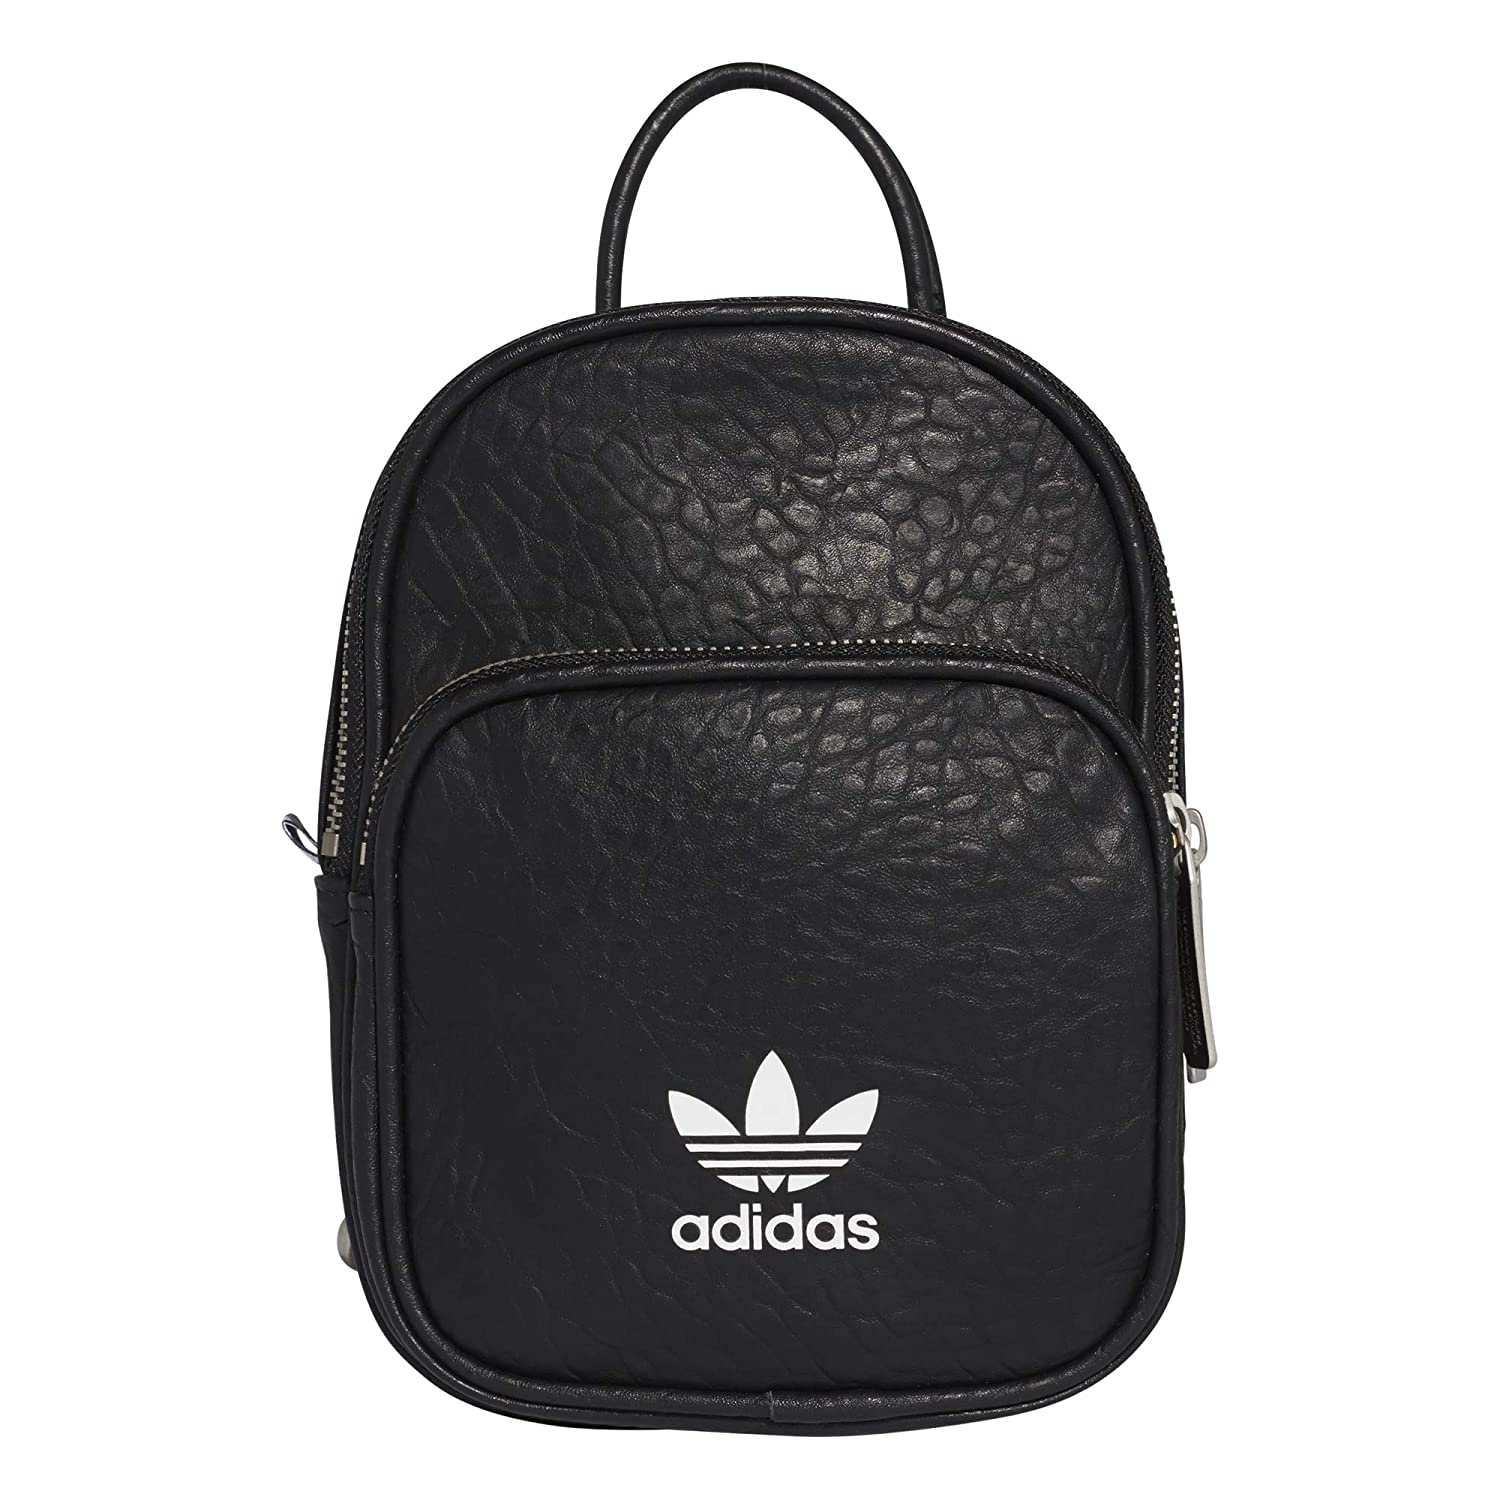 Amazon.com   Adidas Originals Mini Backpack One Size Black   Casual Daypacks 8b03ef345e